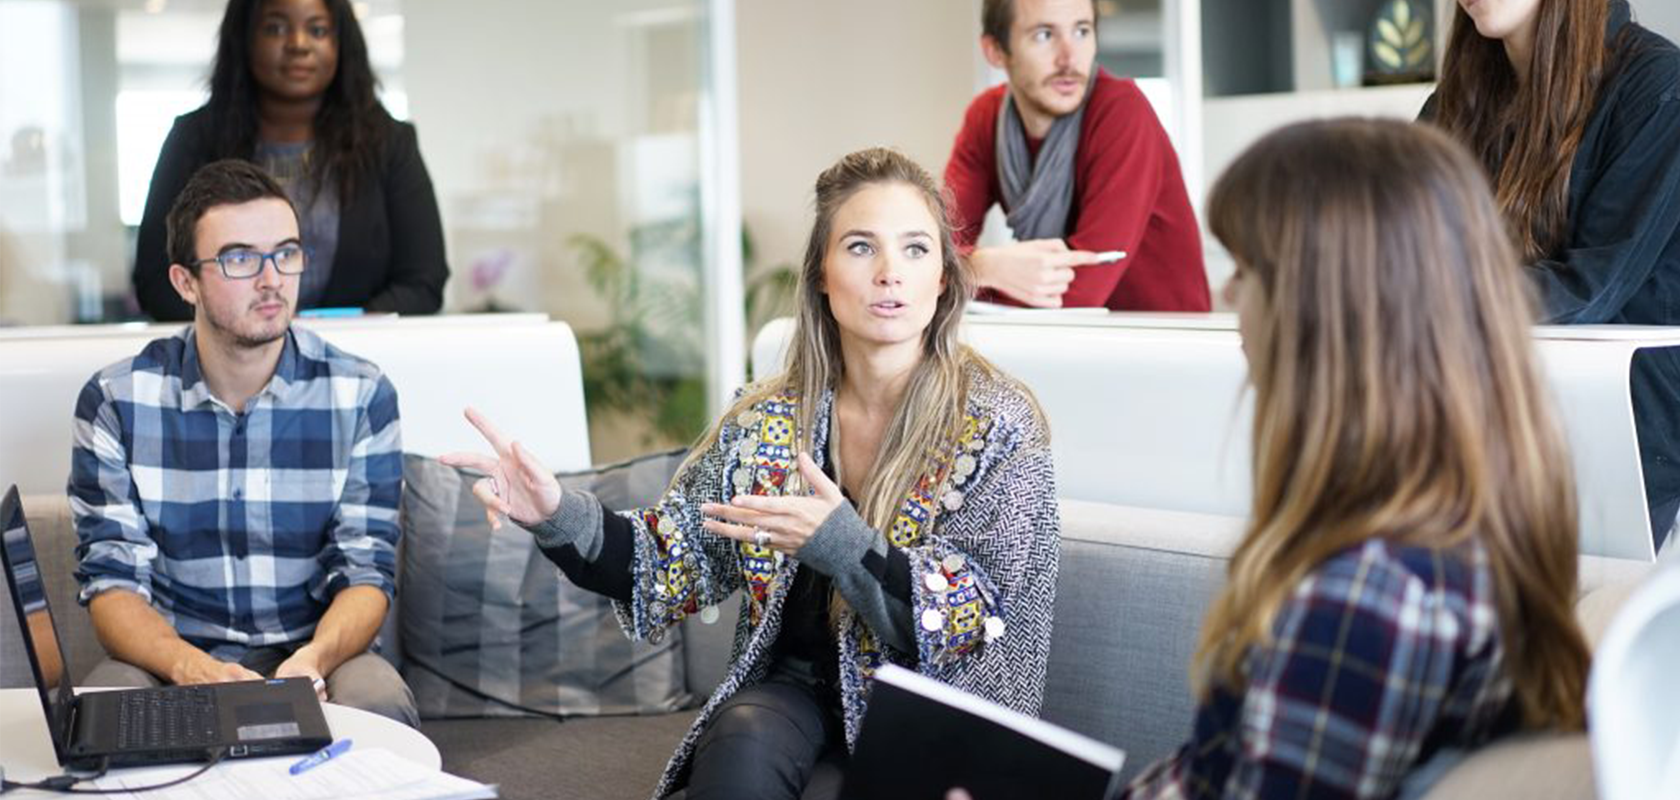 5 tips for running effective meetings